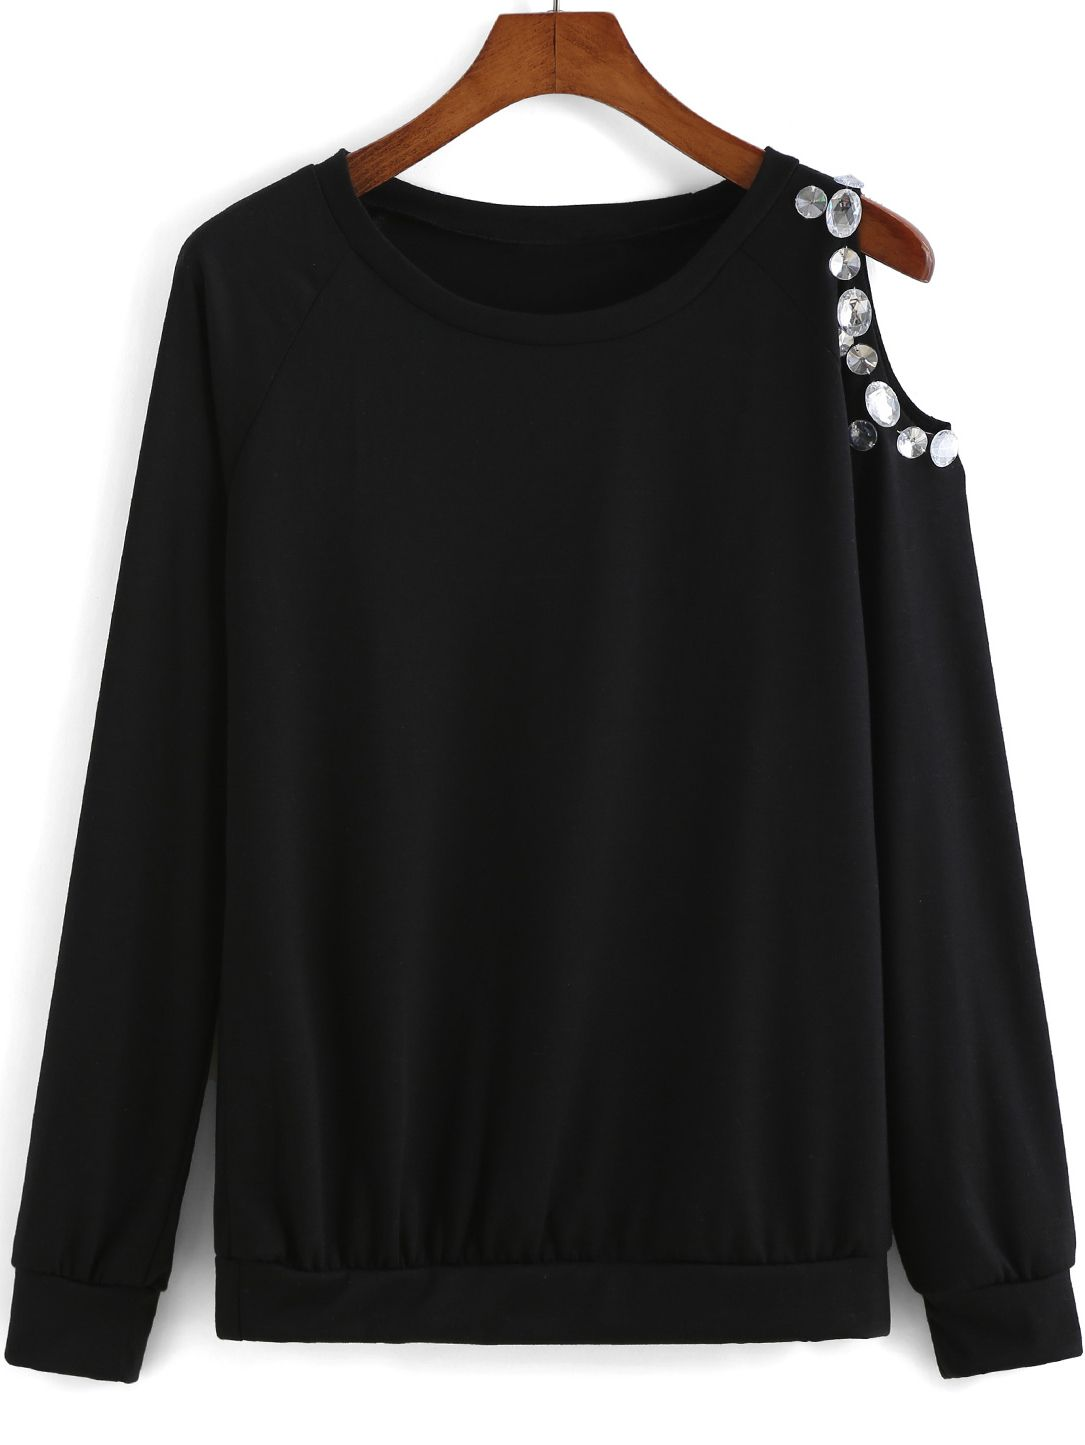 Black round neck oneshoulder rhinestone blouse outfits i want